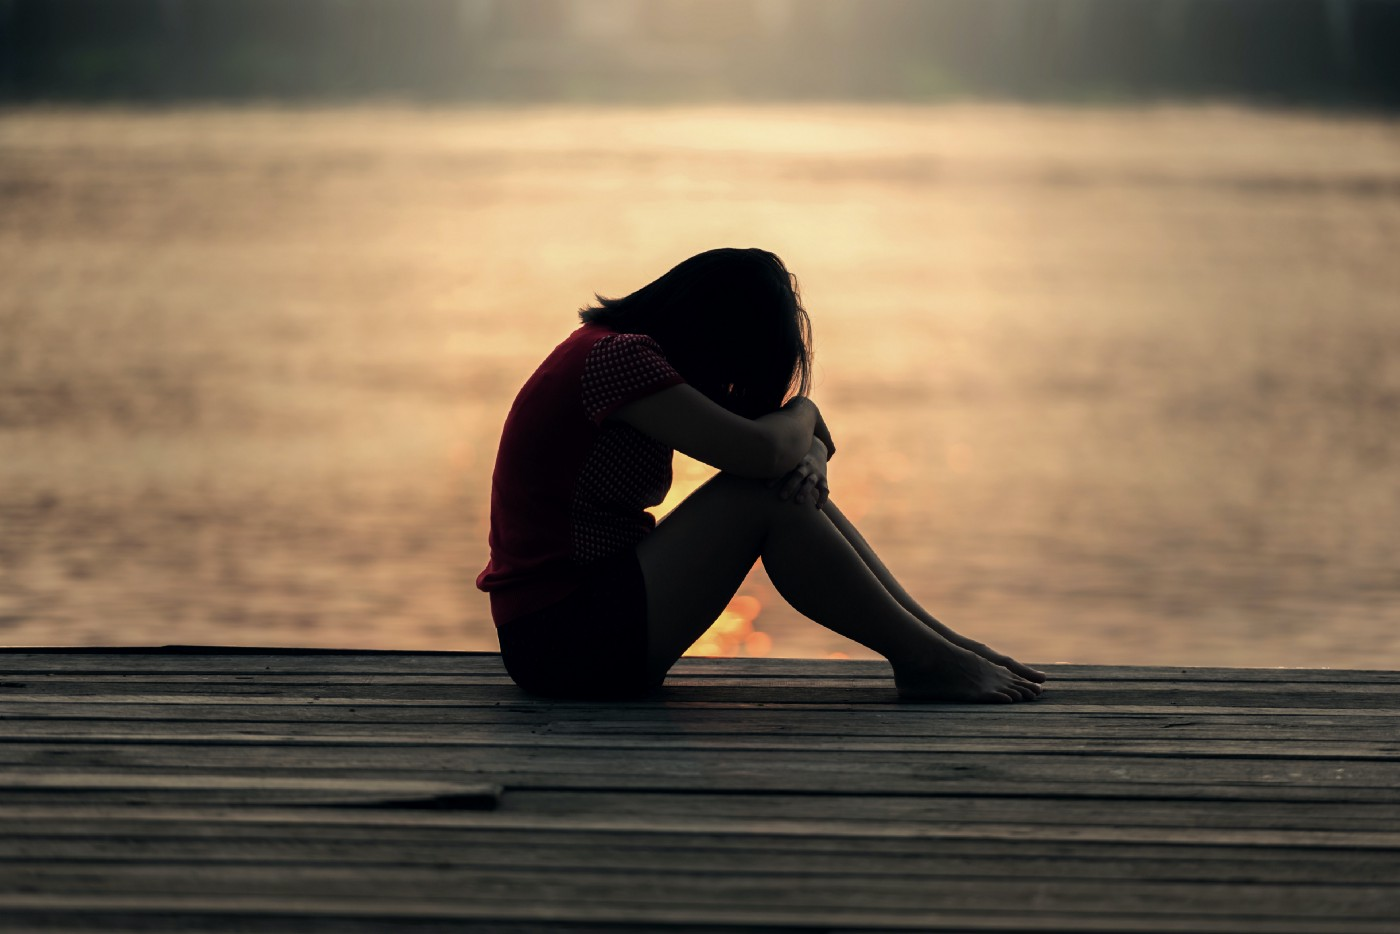 A sad girl sitting on a wooden ledge with her head bowed to her knees and the water shimmering in the background with mellow evening light.